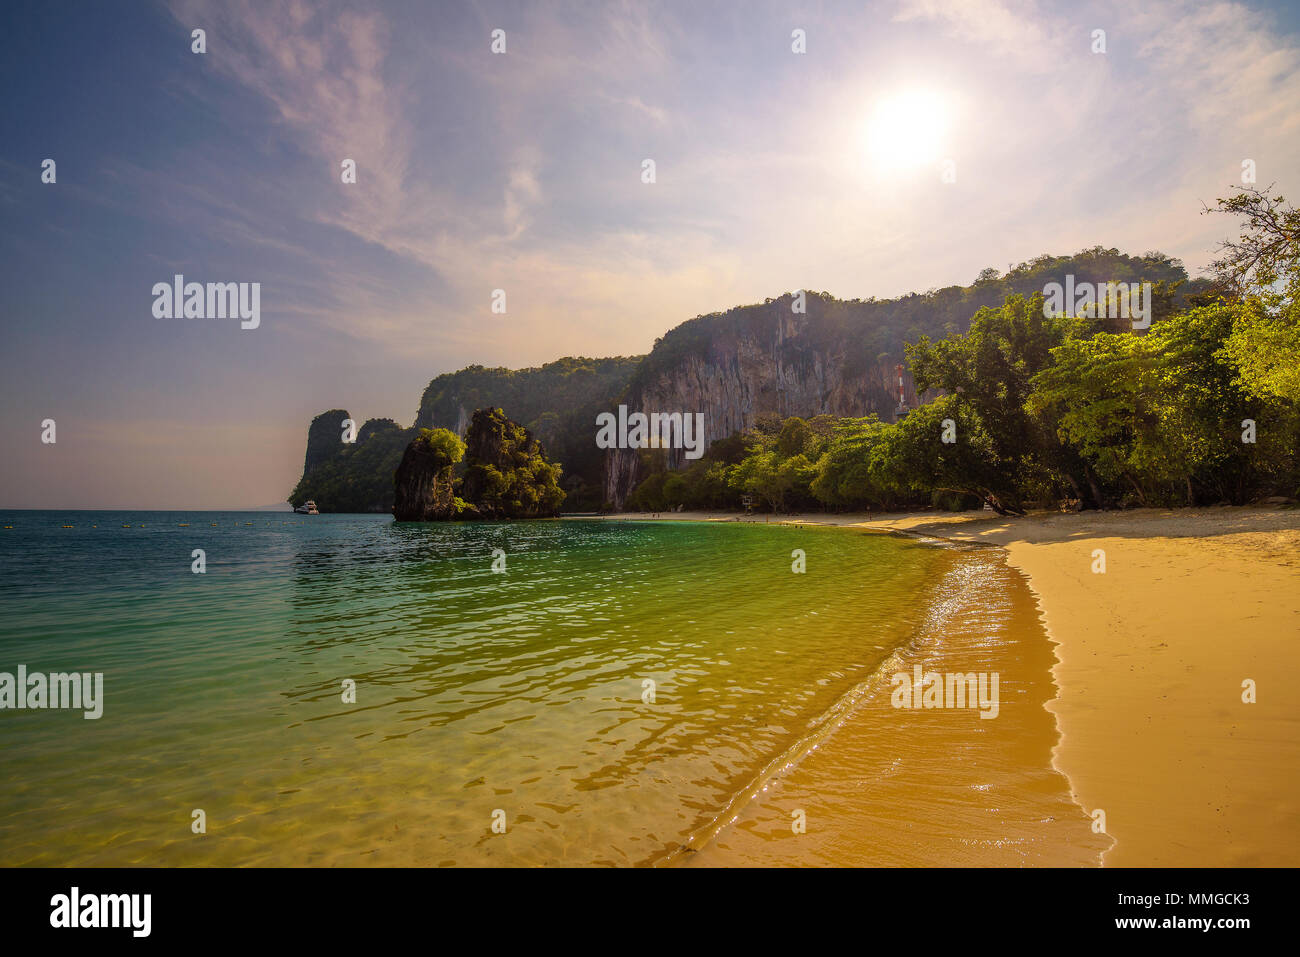 Beach on the Koh Hong island in Thailand - Stock Image